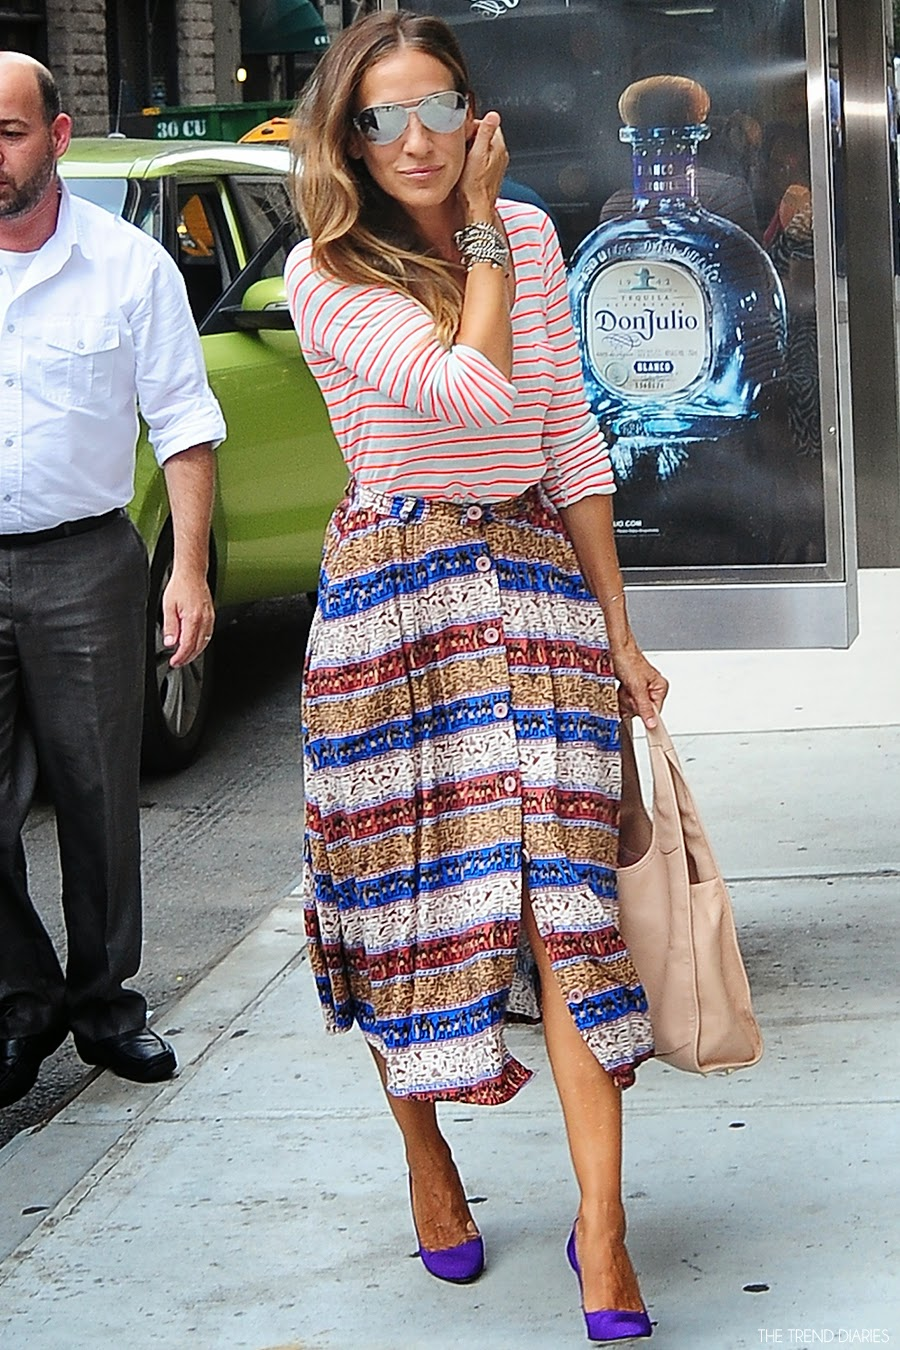 October 2014 The Trend Diaries Latest Celebrity Style Fashion And Beauty Trends Street